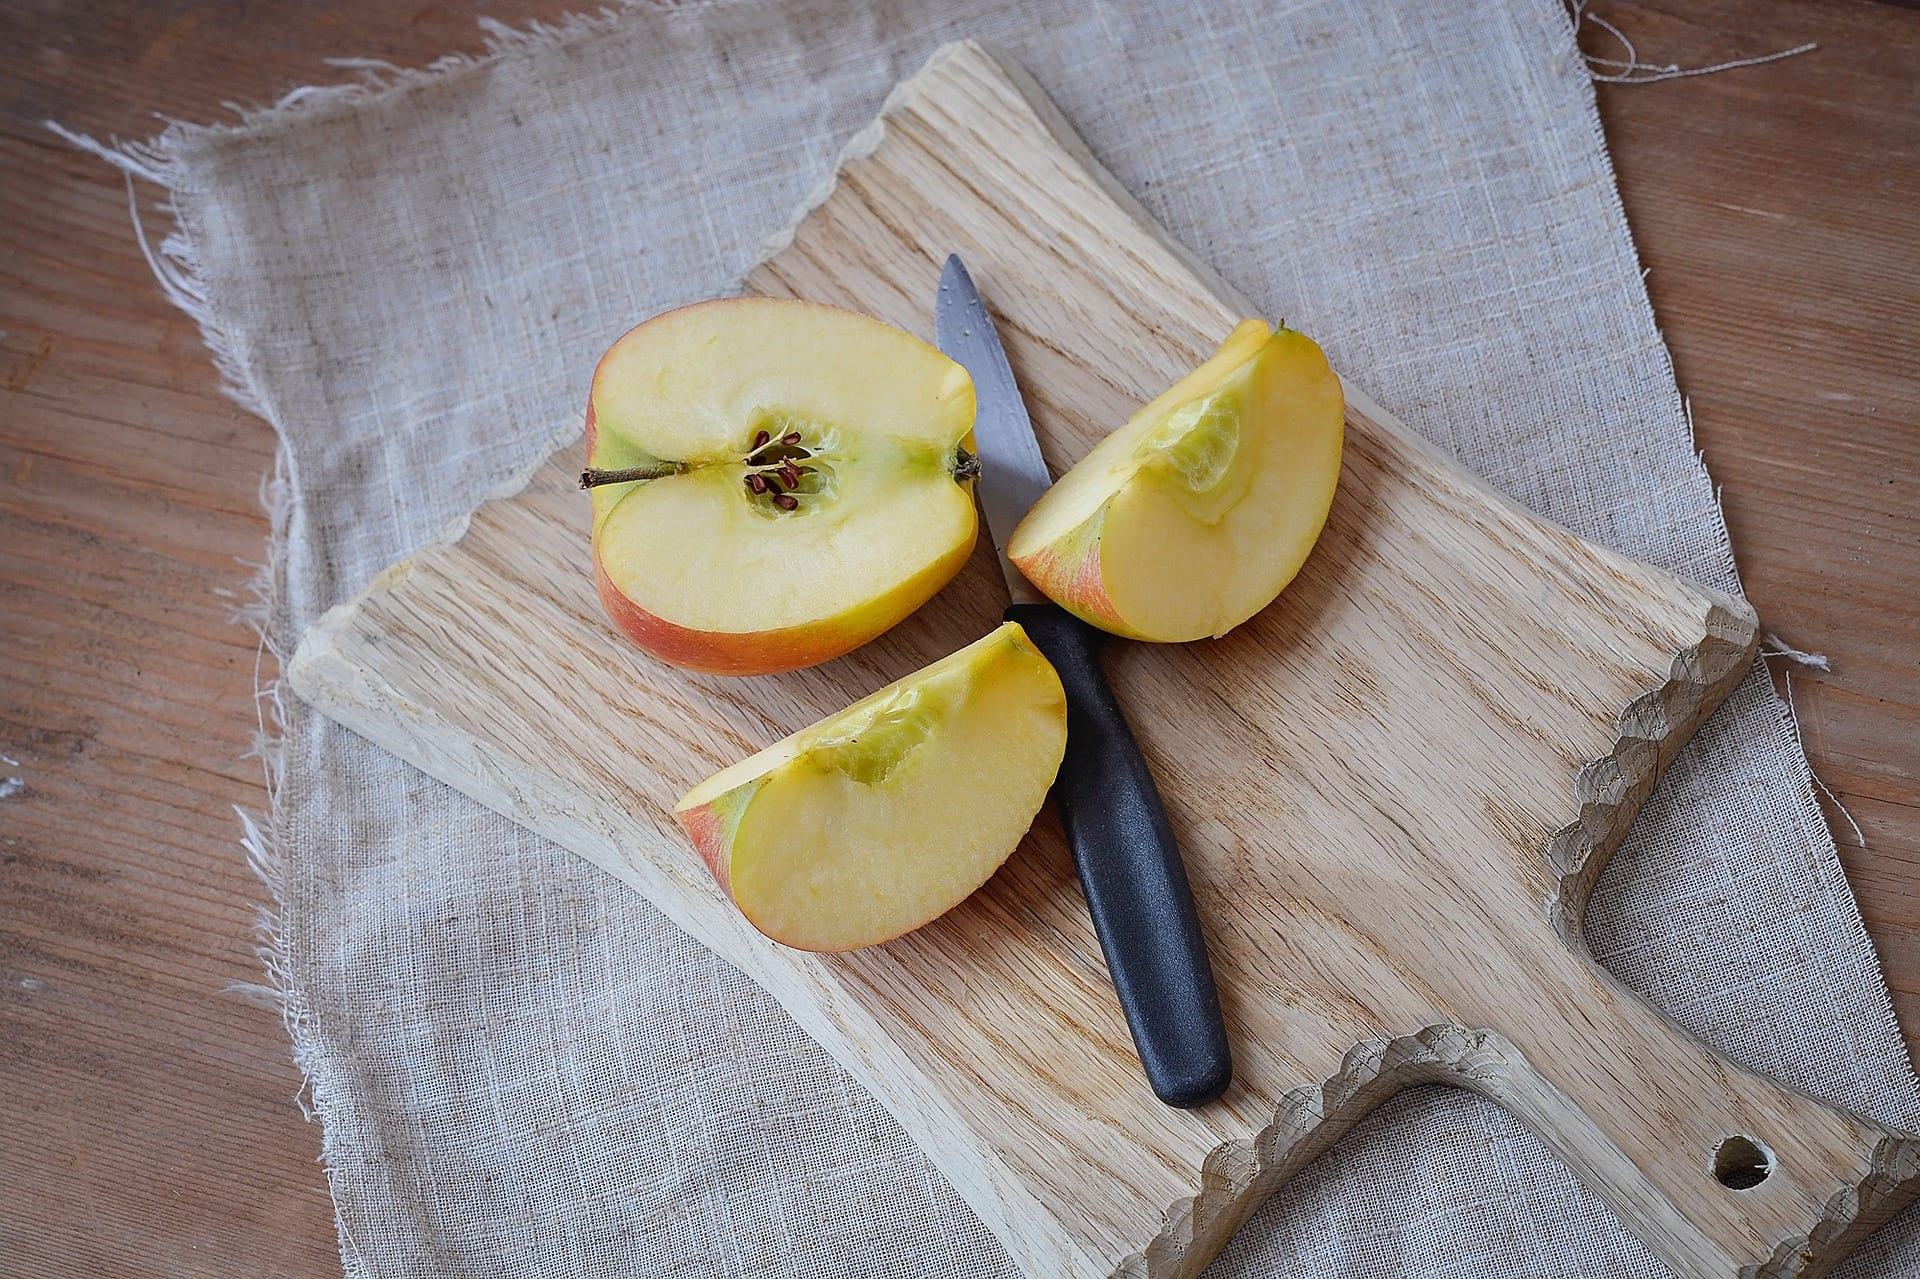 Sliced apple on a wooden cutting board.